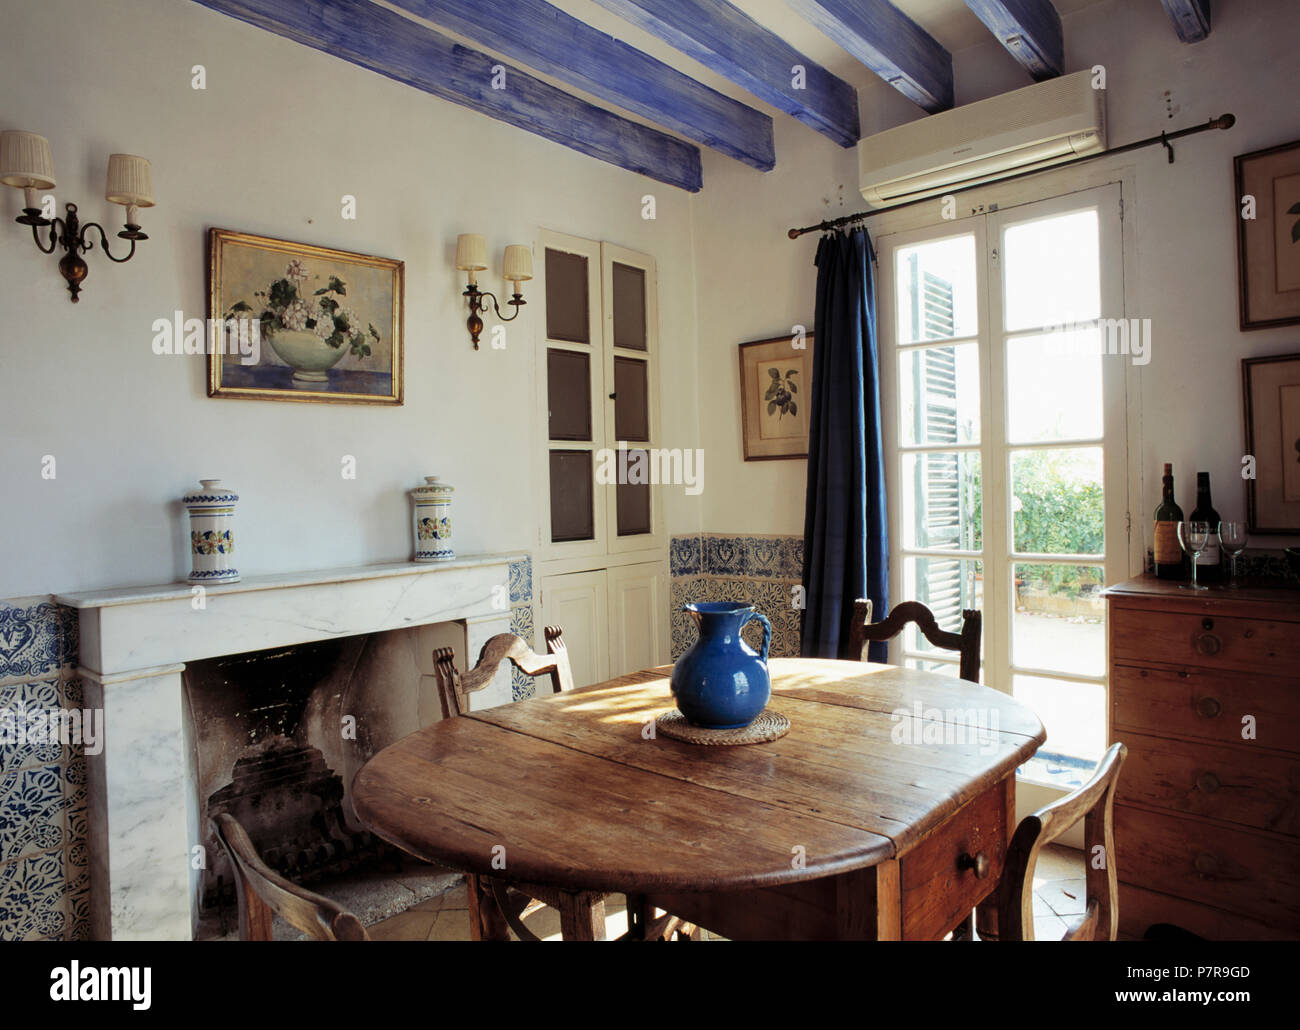 Painted Blue Ceiling Beams In Mediterranean Dining Room With ...